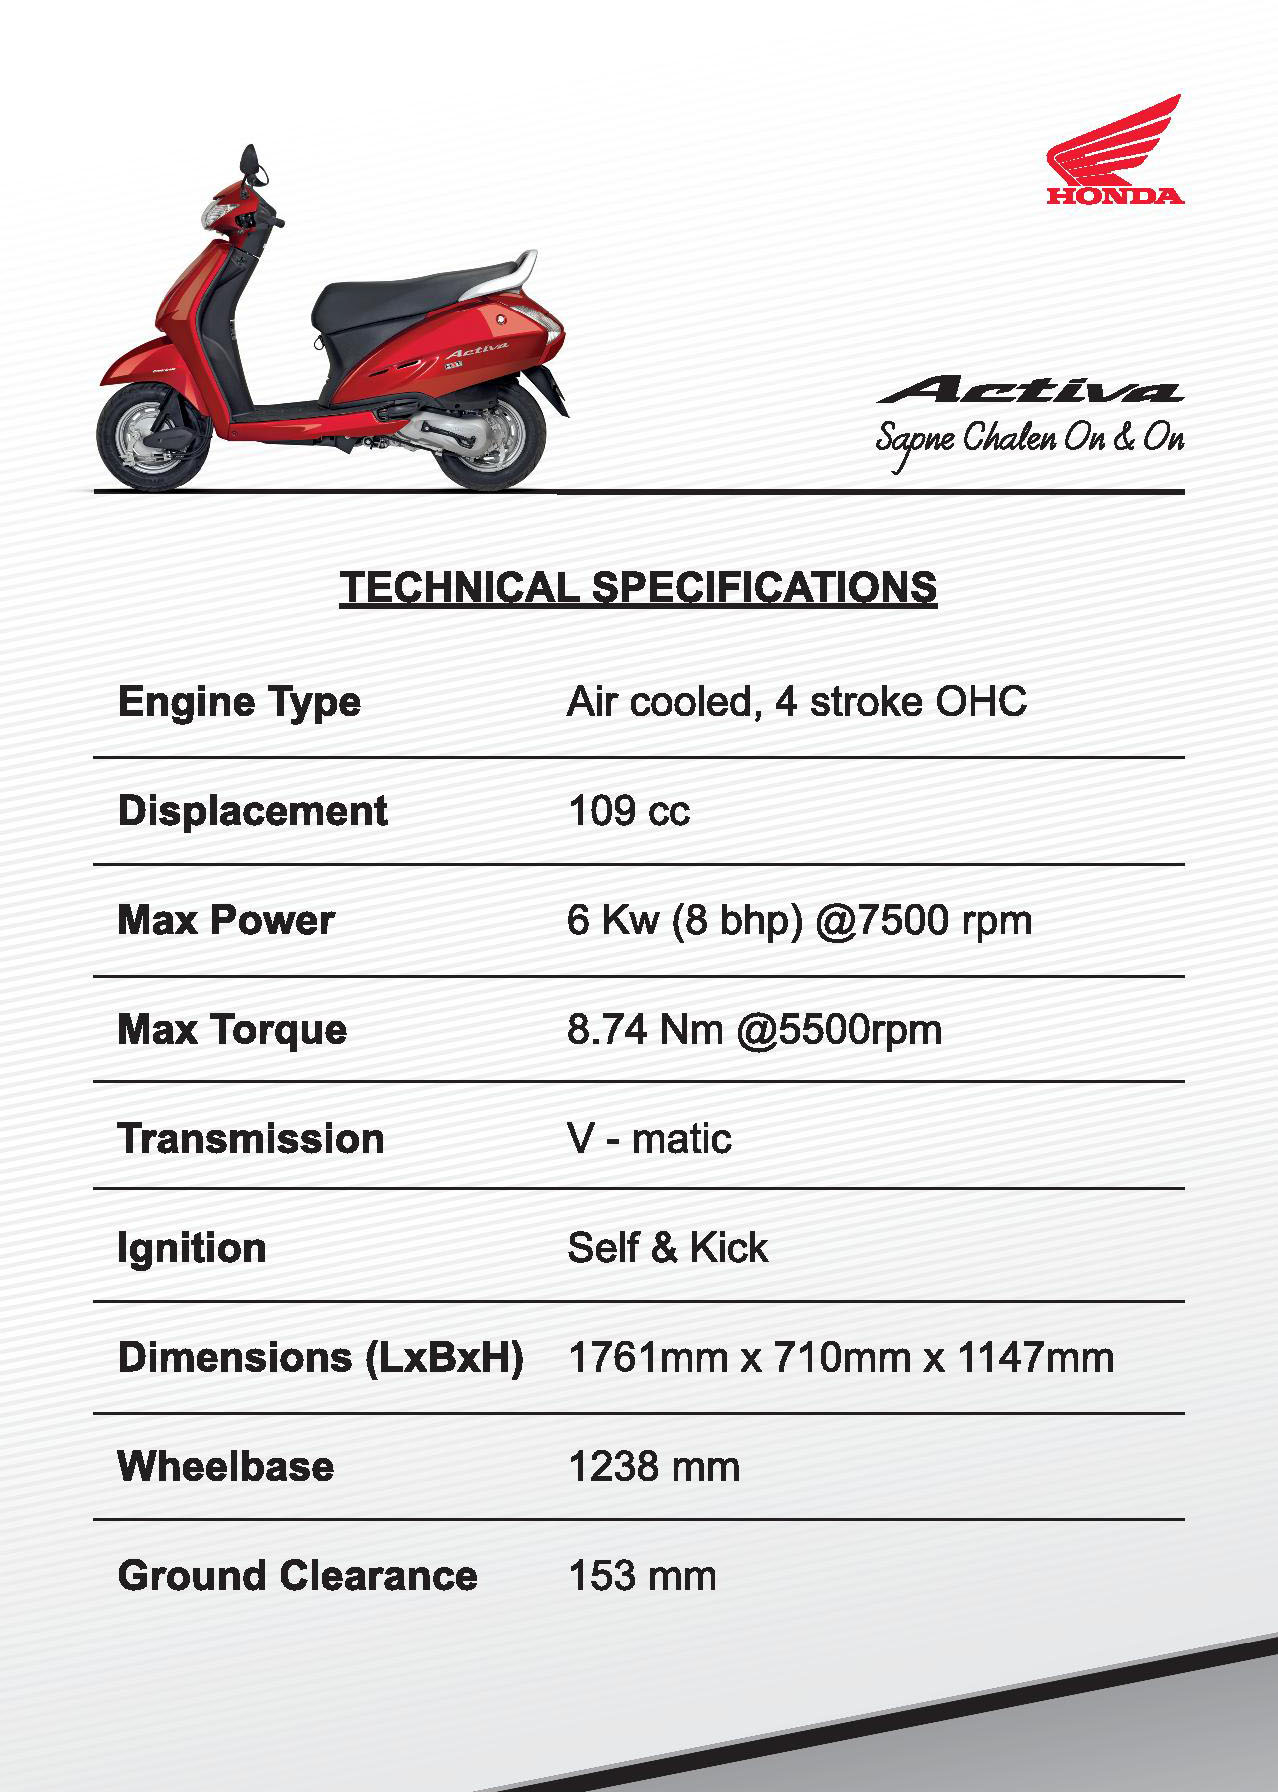 Activa 125 Specifications